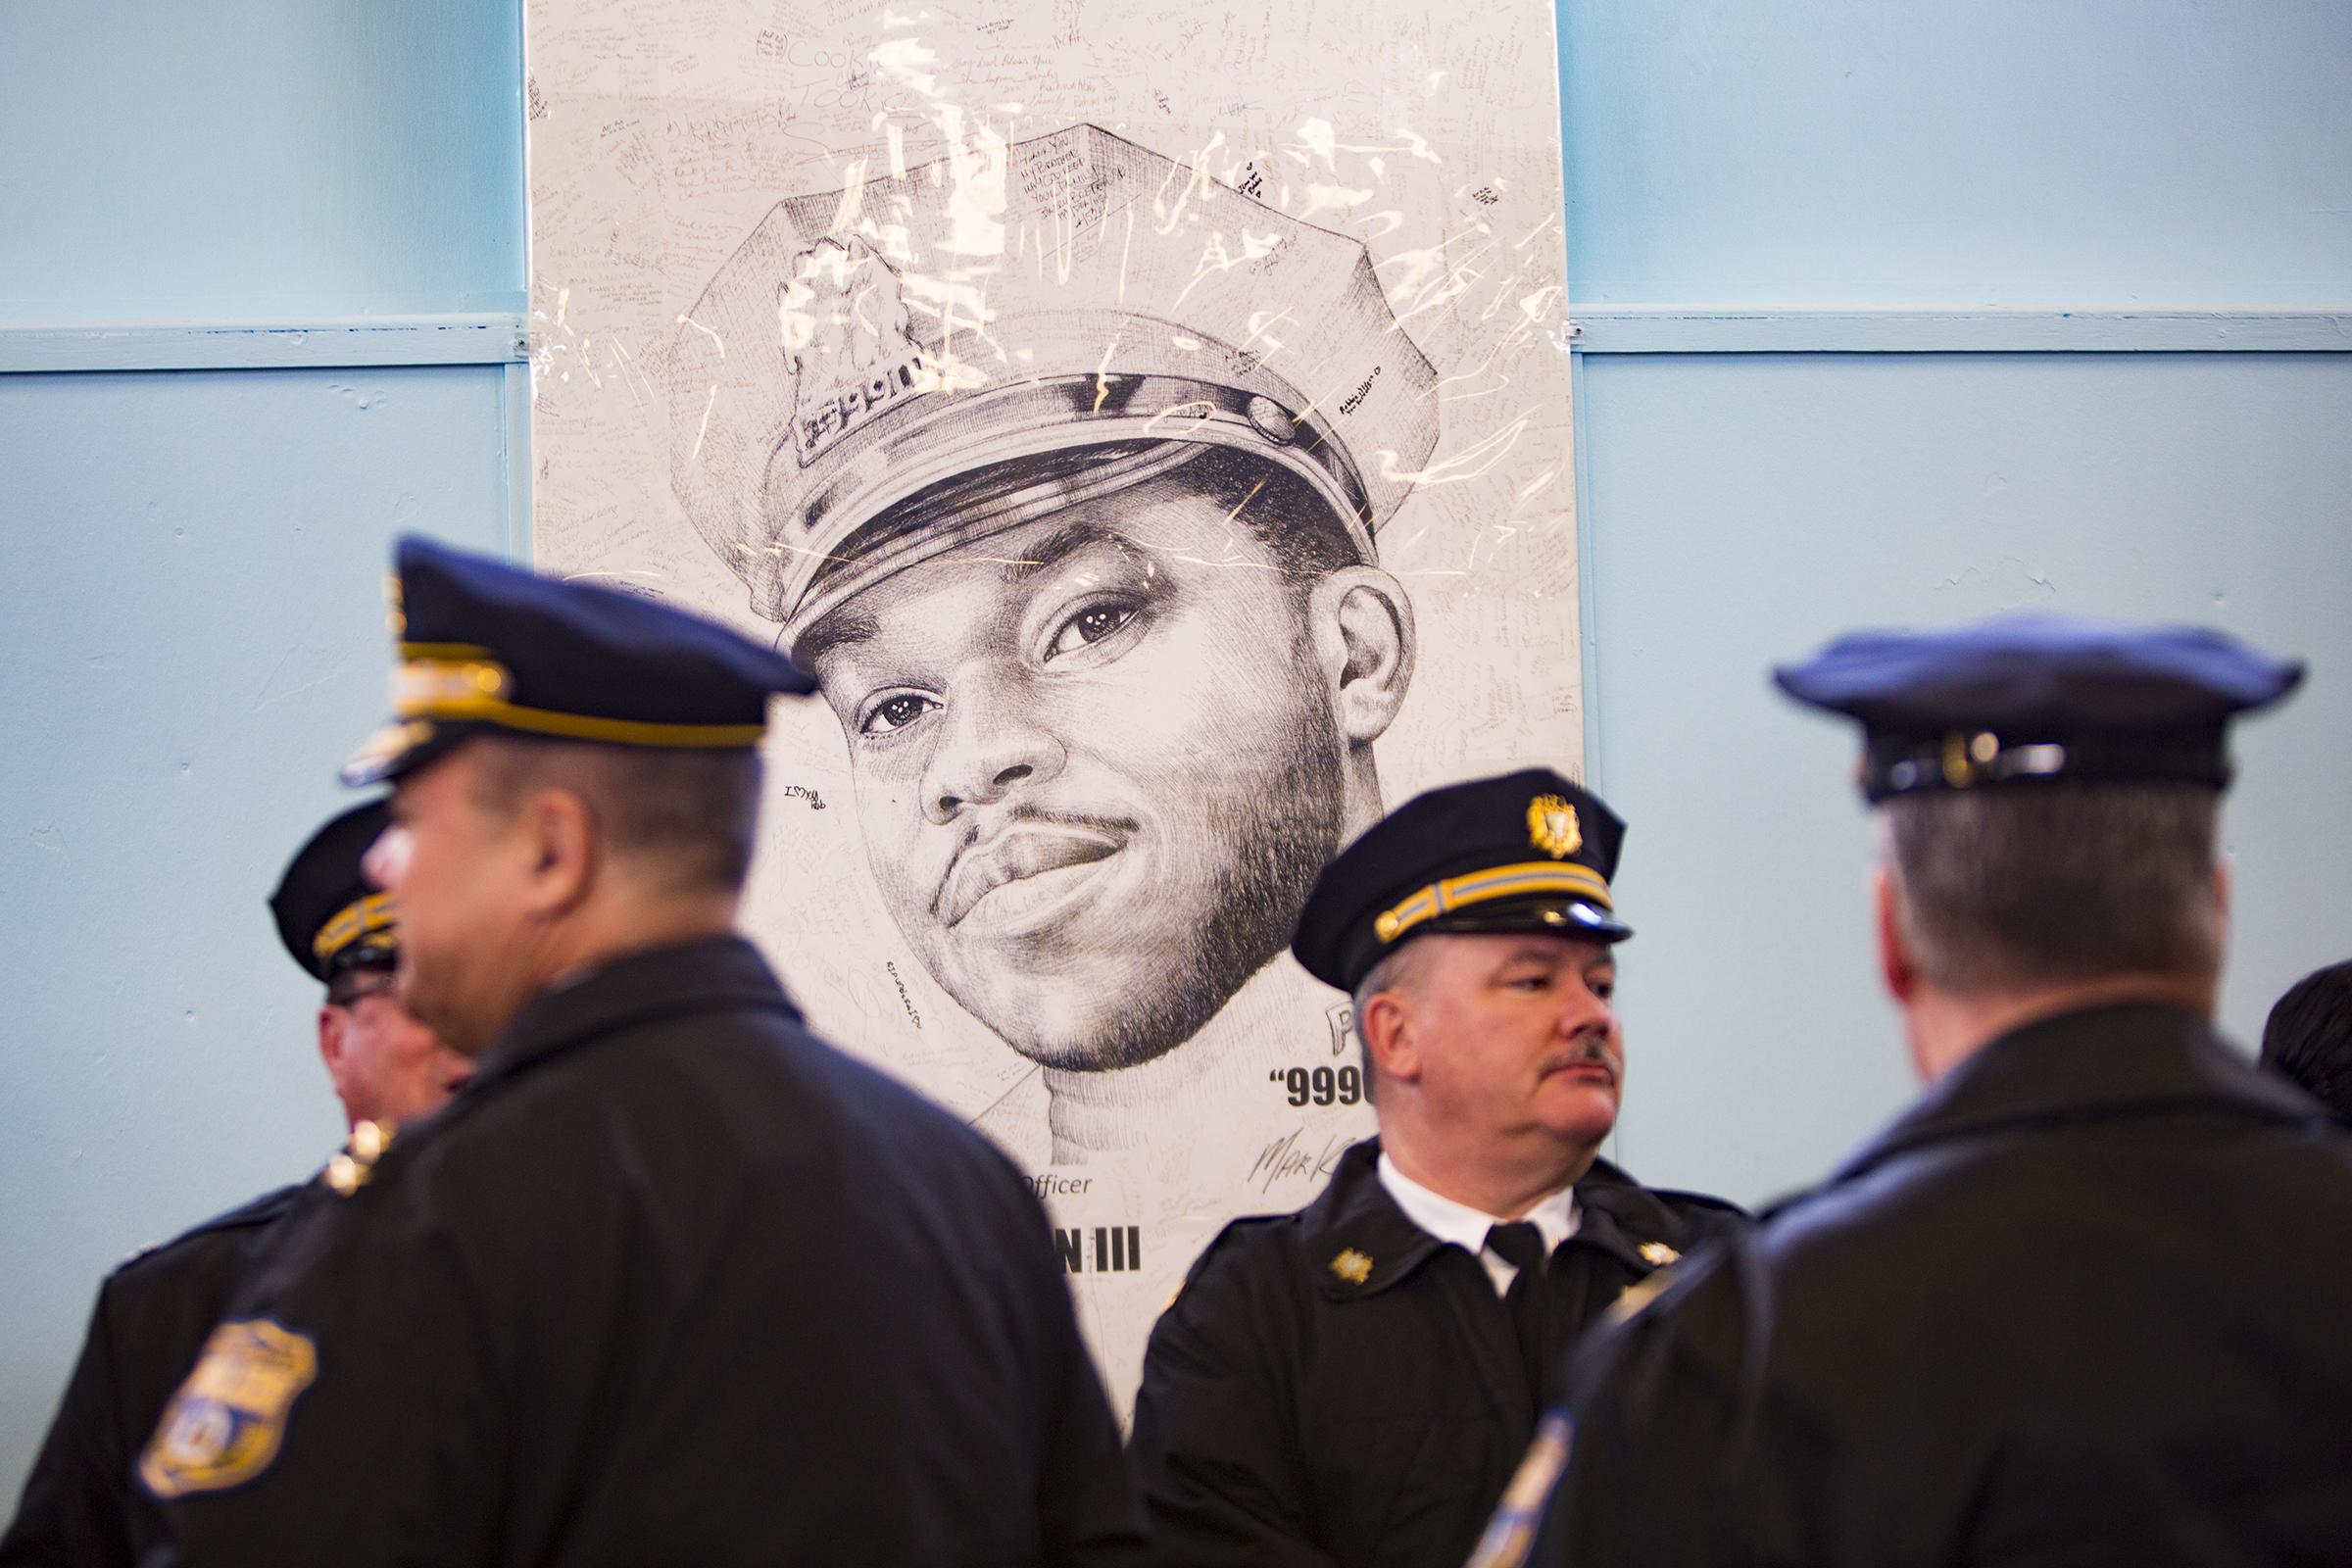 A portrait of officer Robert Wilson III looks over officers gathered in his honor at the 22nd district on the 3rd anniversary of his death.